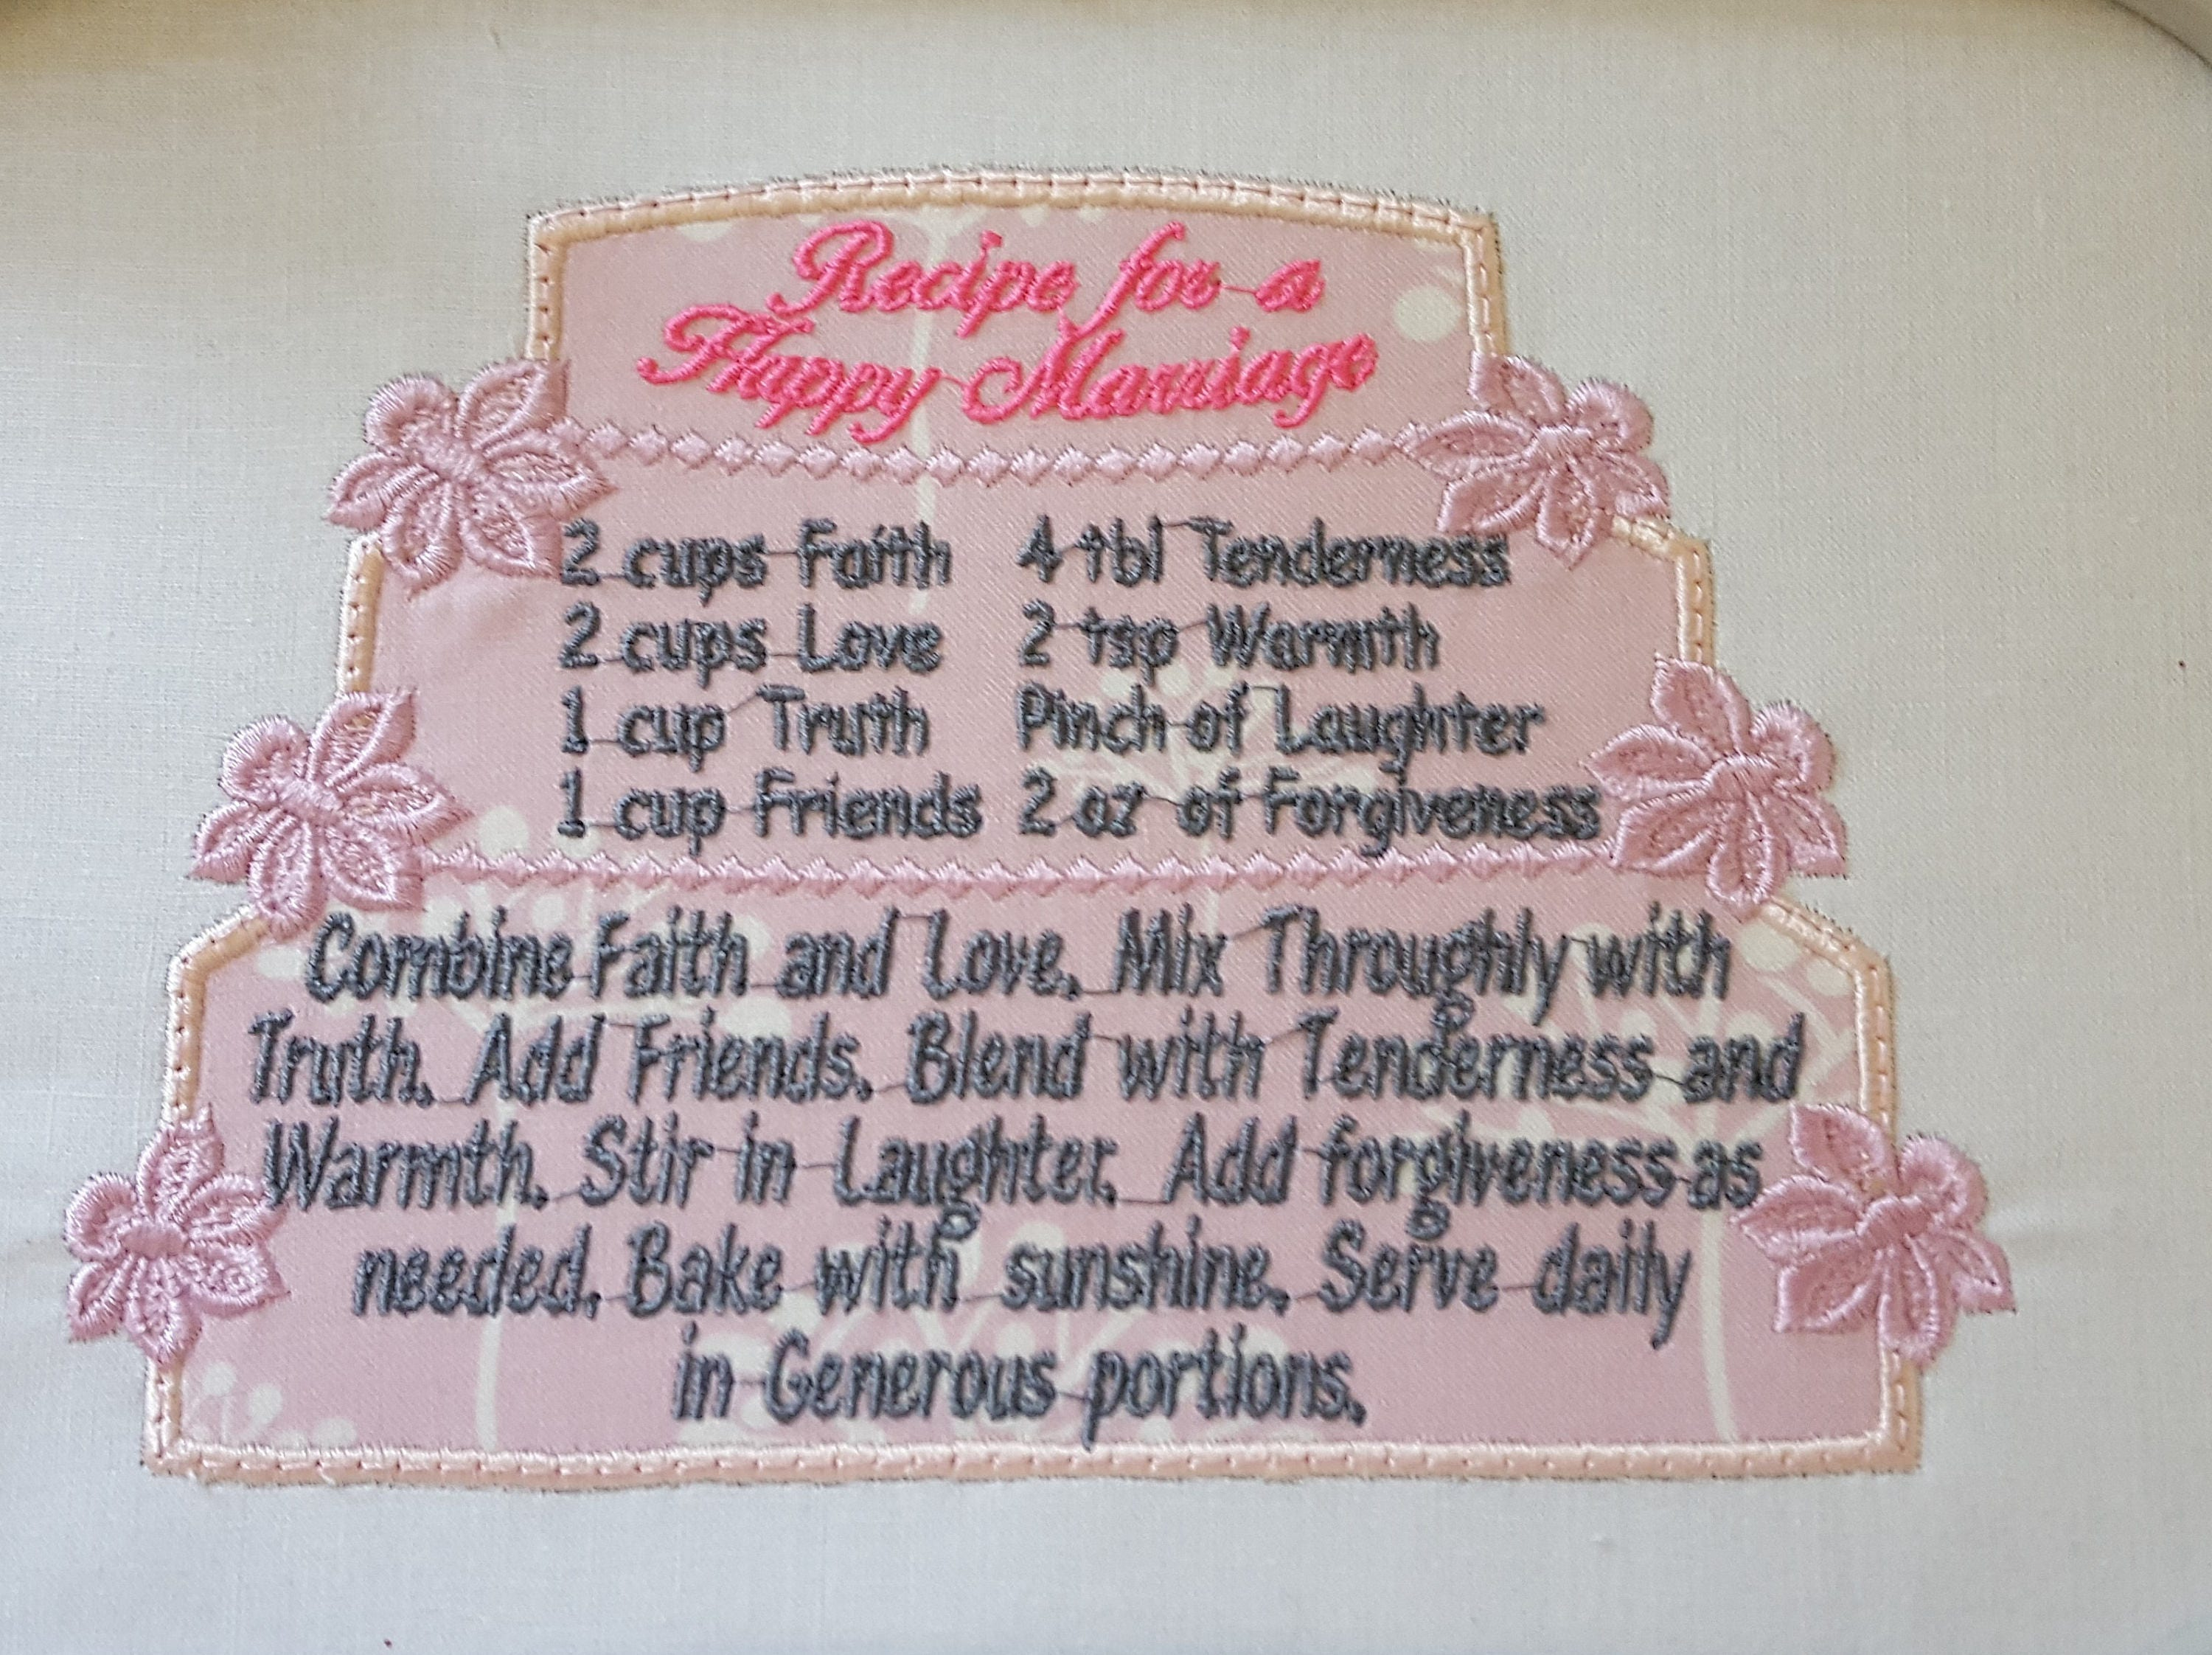 quilt designs download images cahust embroidery label sayings com of ith machine lqbels